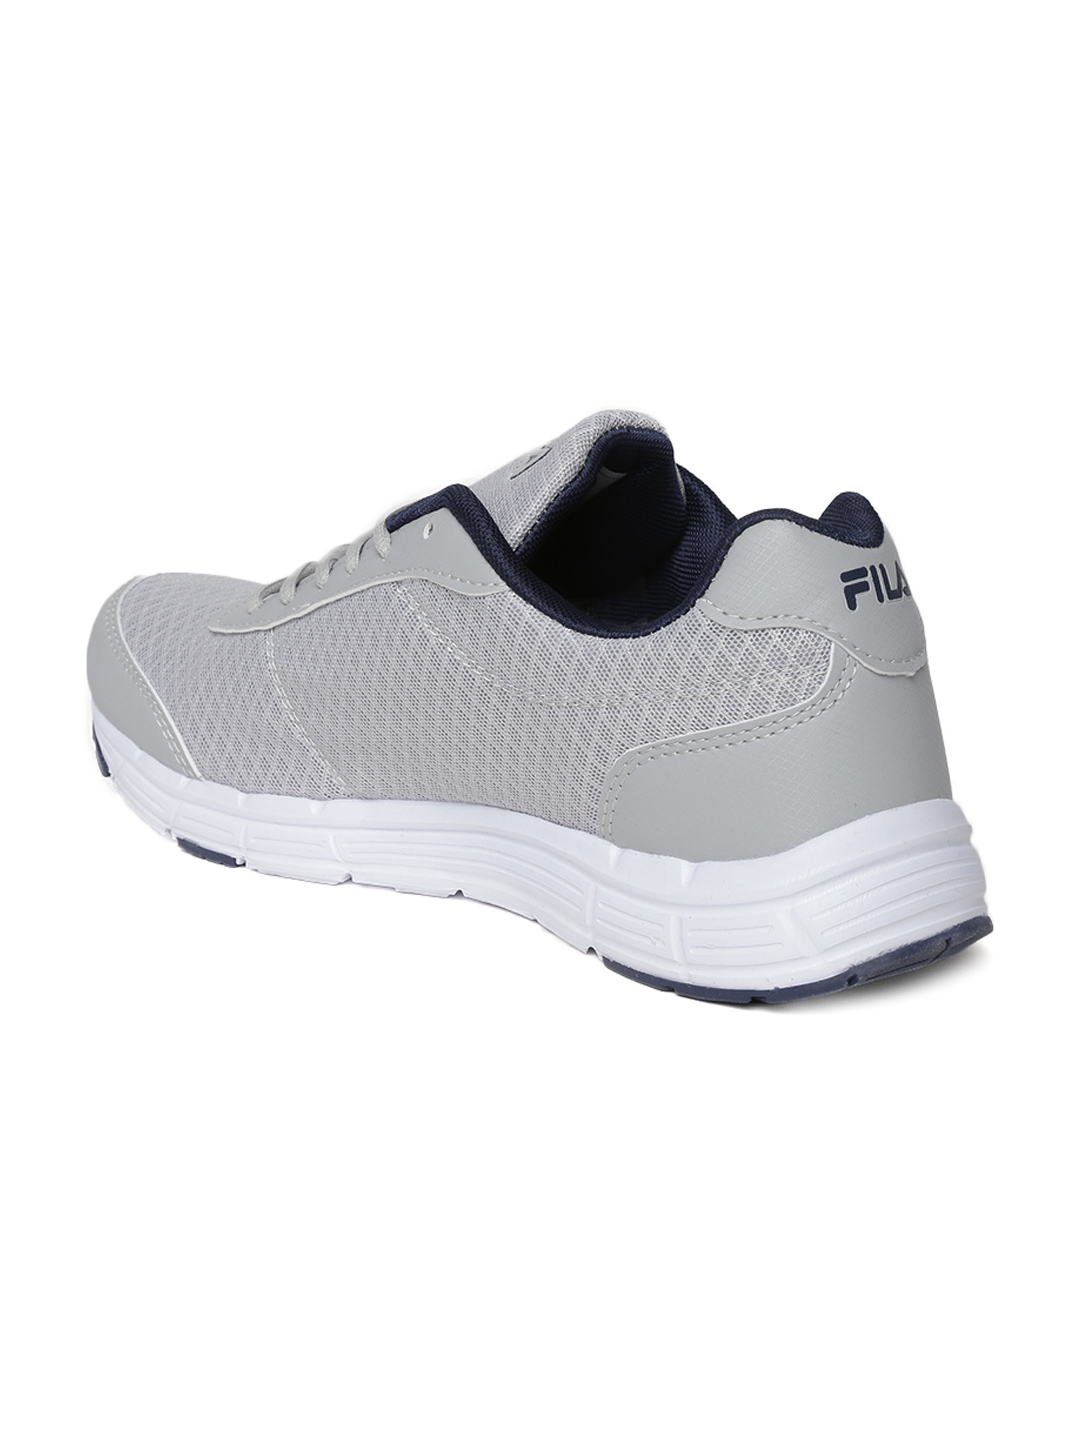 Fila Sport Shoes Lowest Price